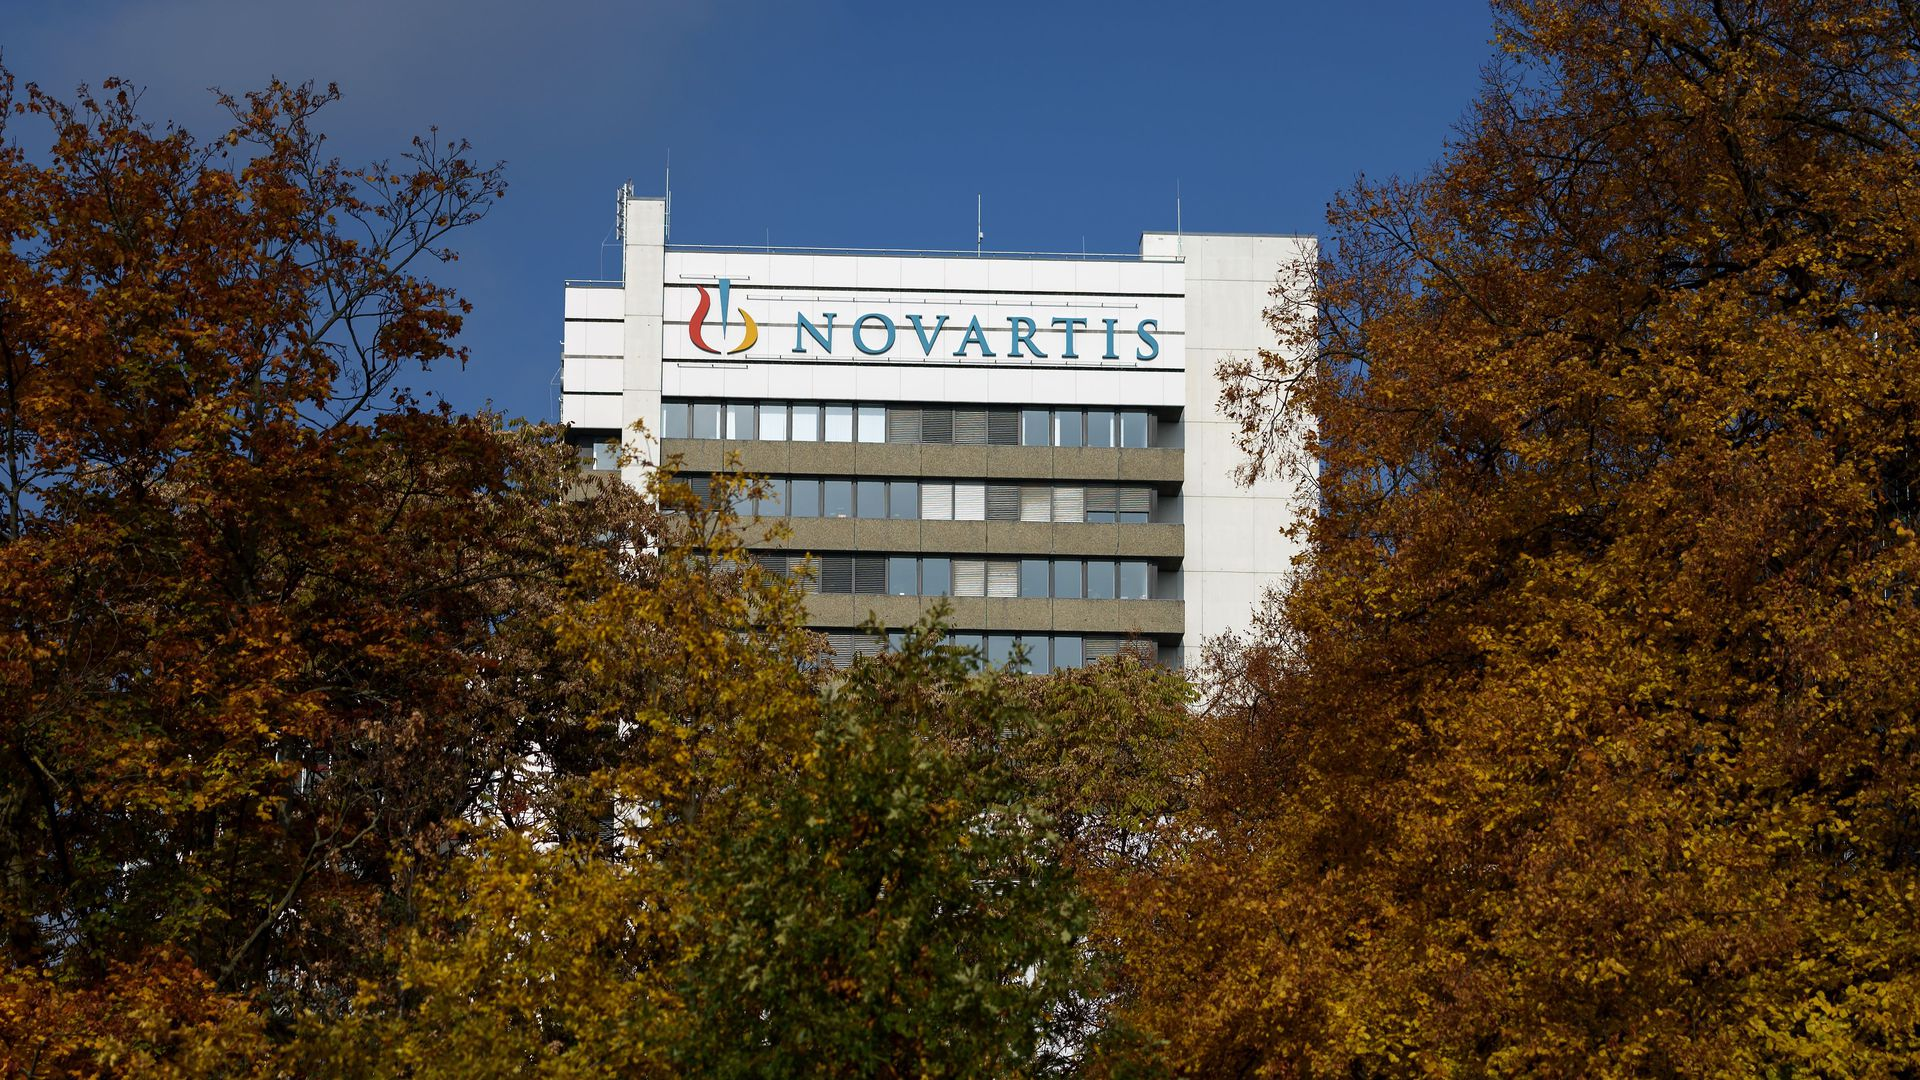 Novartis headquarters in Switzerland.